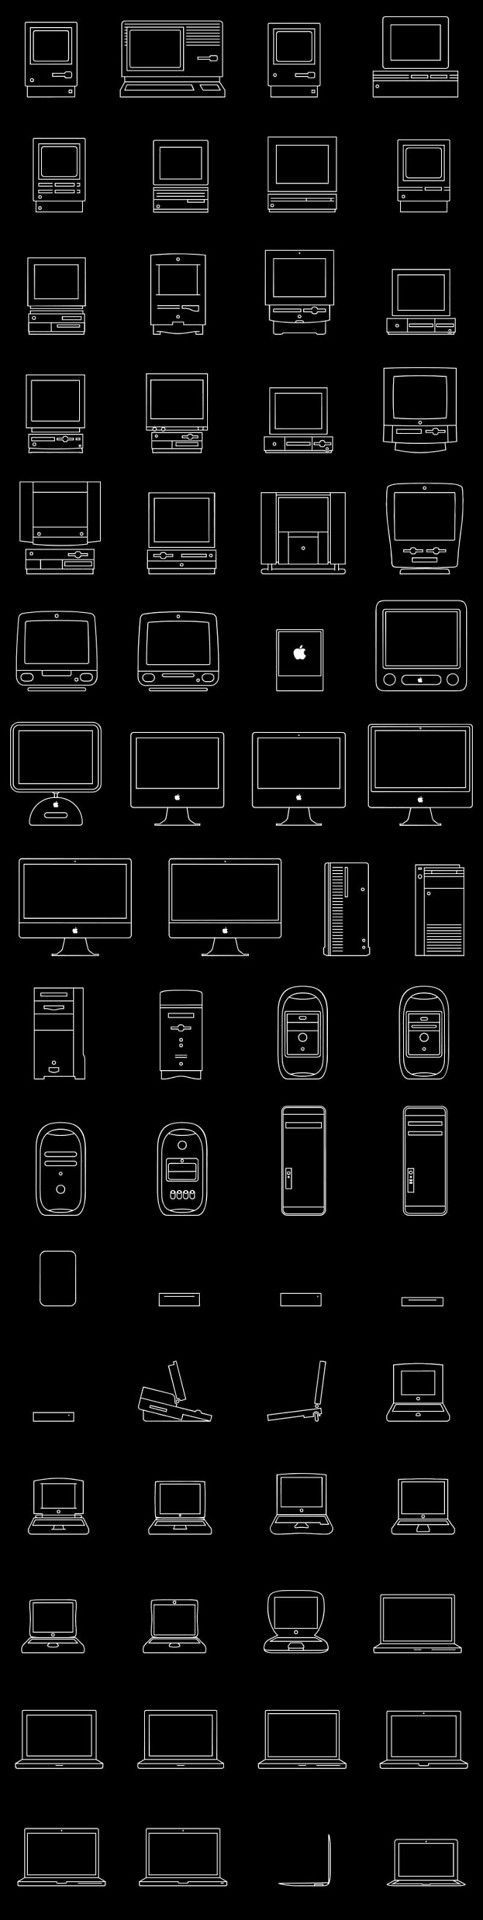 Stories of Apple on Tumblr — Icons of 30 years of Macs Source: Apple